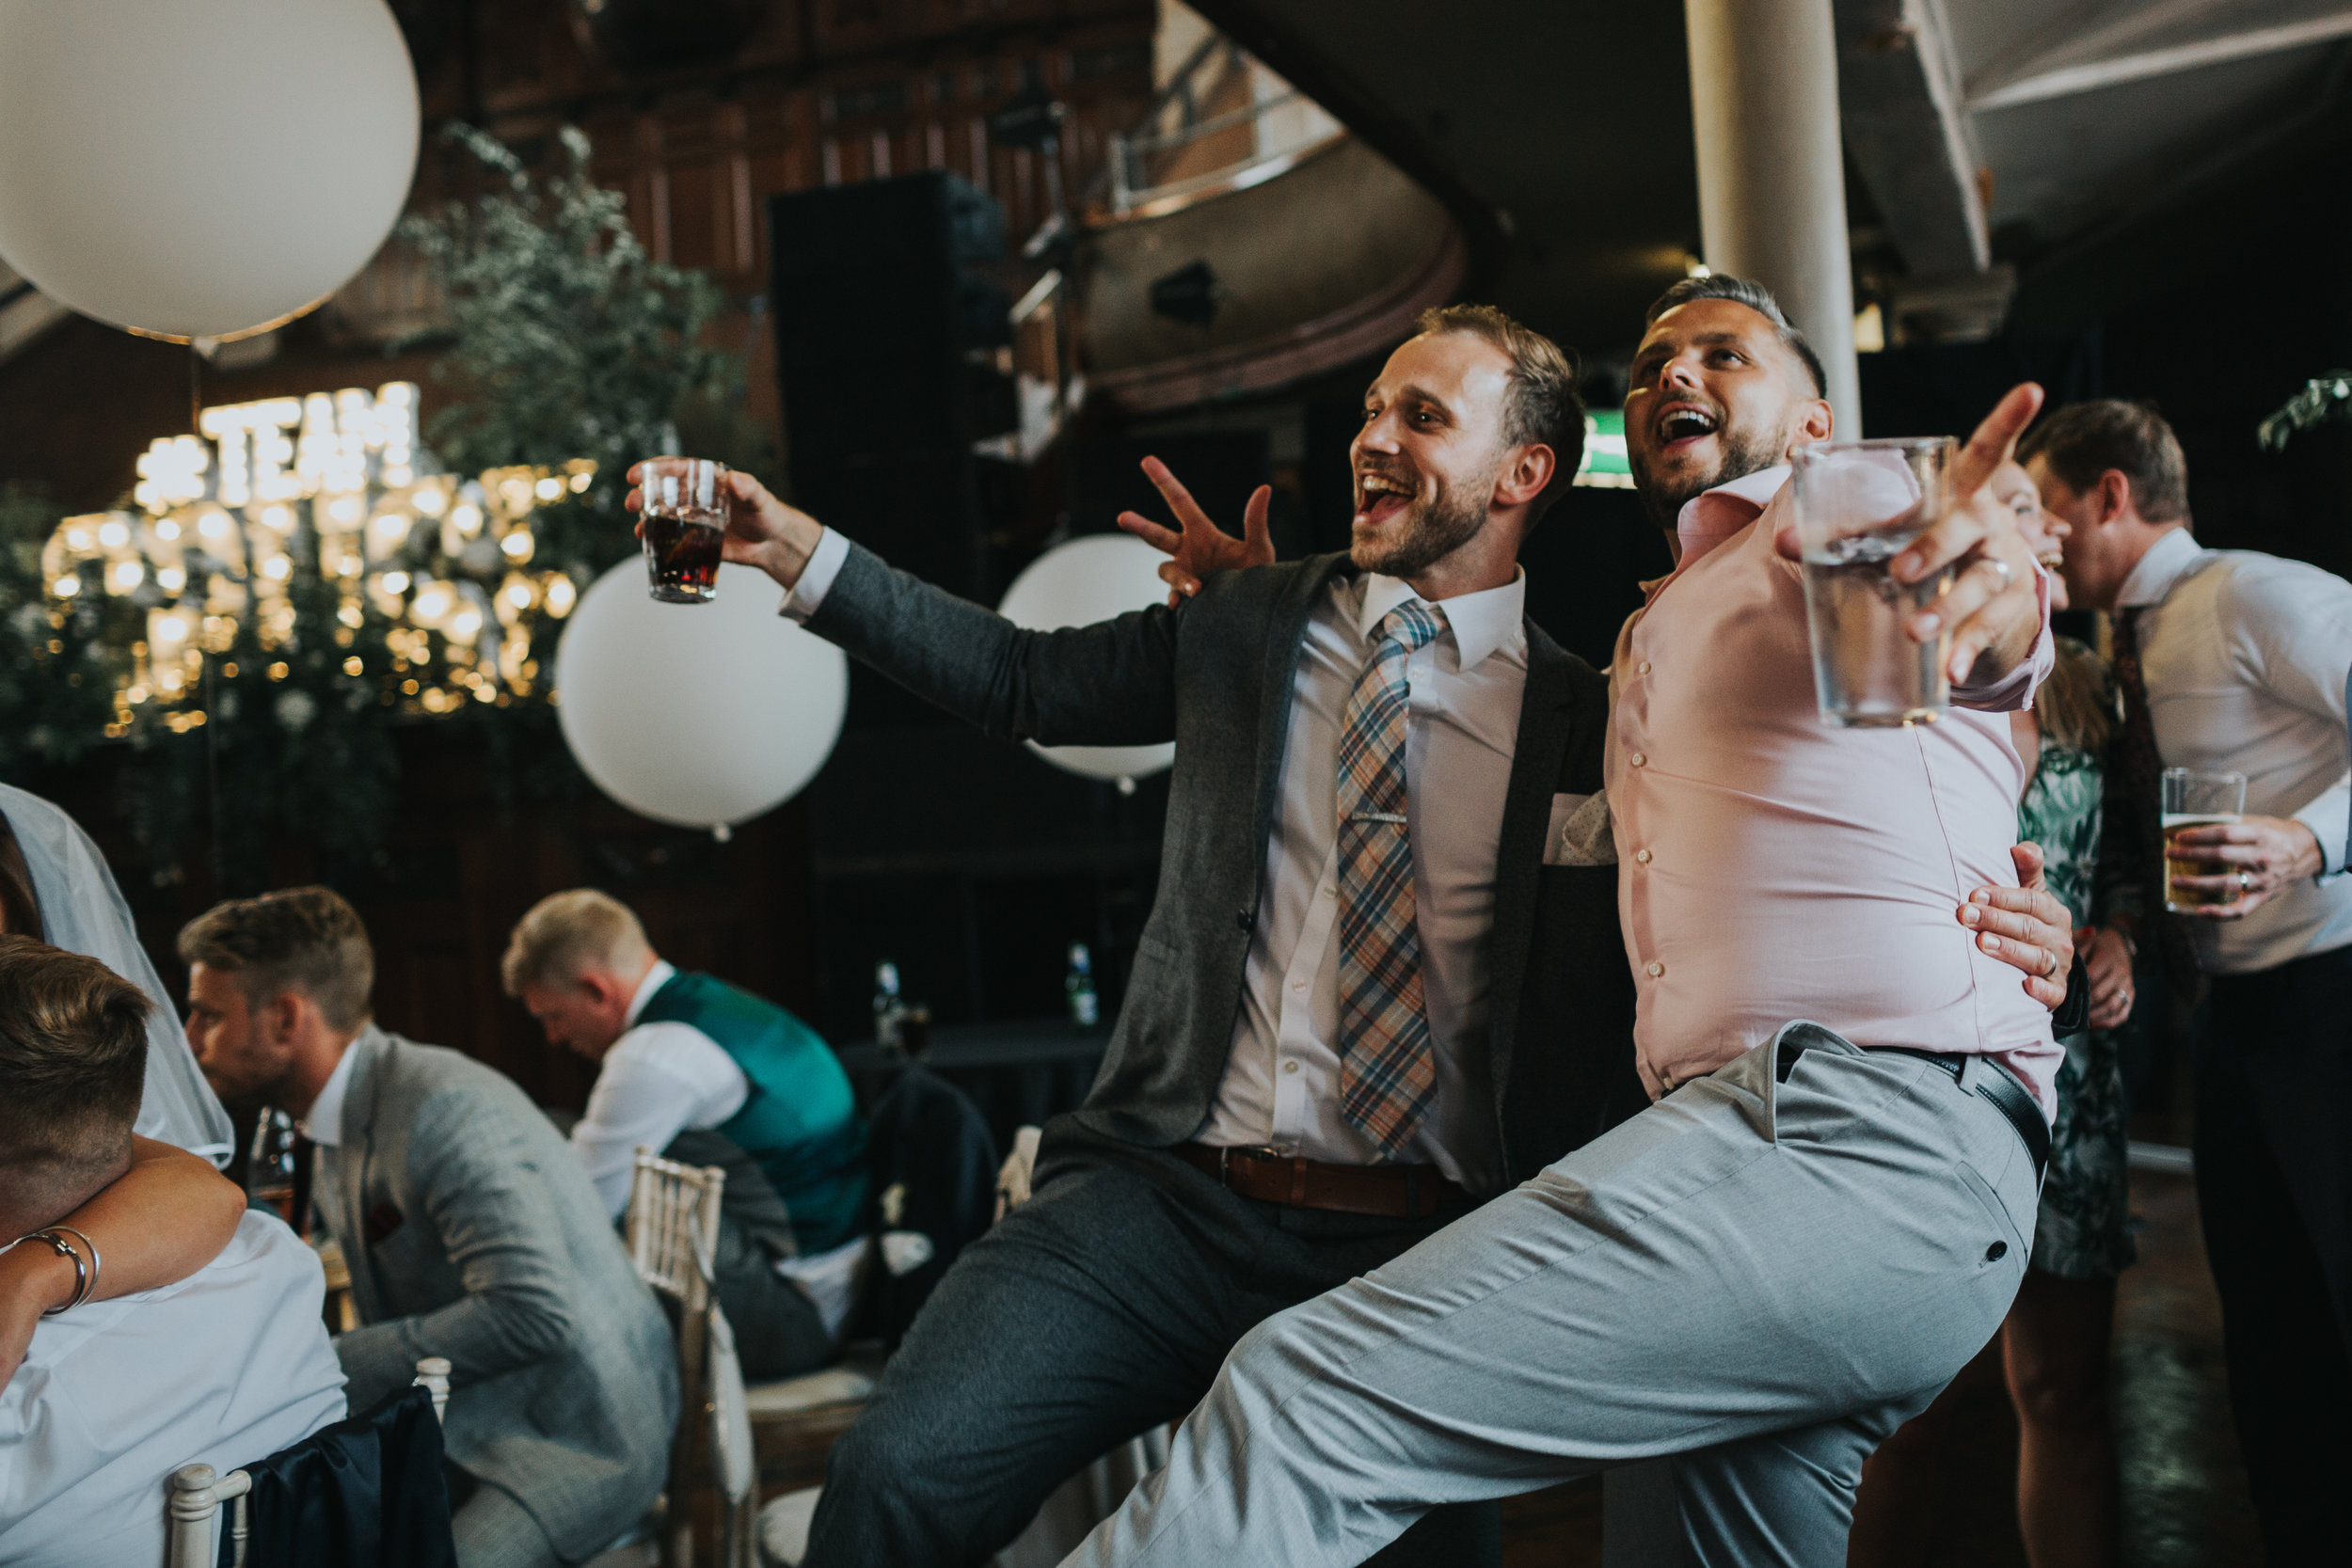 Two male wedding  guests dancing with their legs in the air.